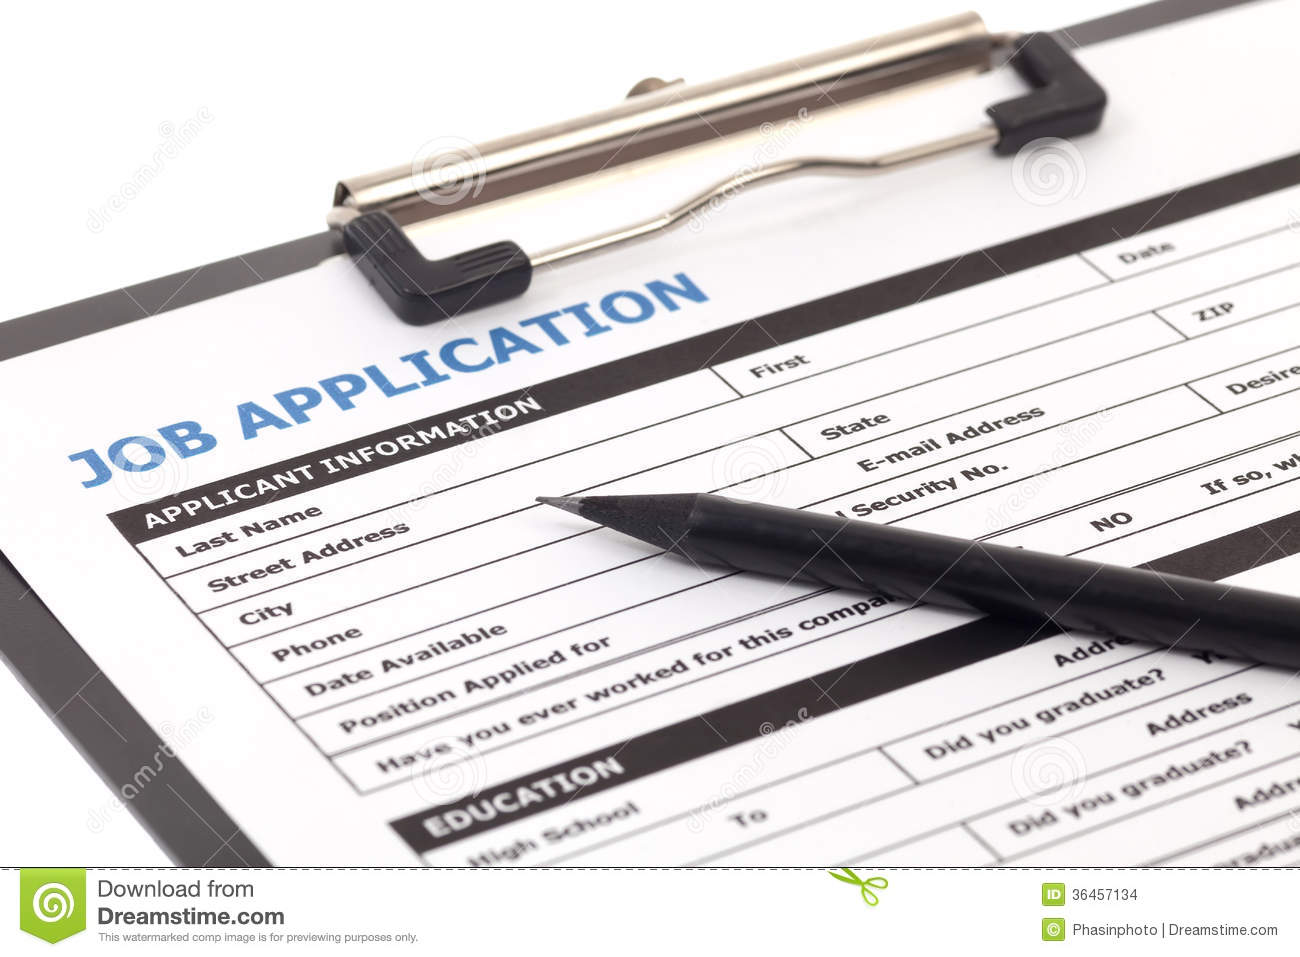 Work application clipart freeuse Local Business Leaders Hiring Candidates in STMA, Hanover ... freeuse